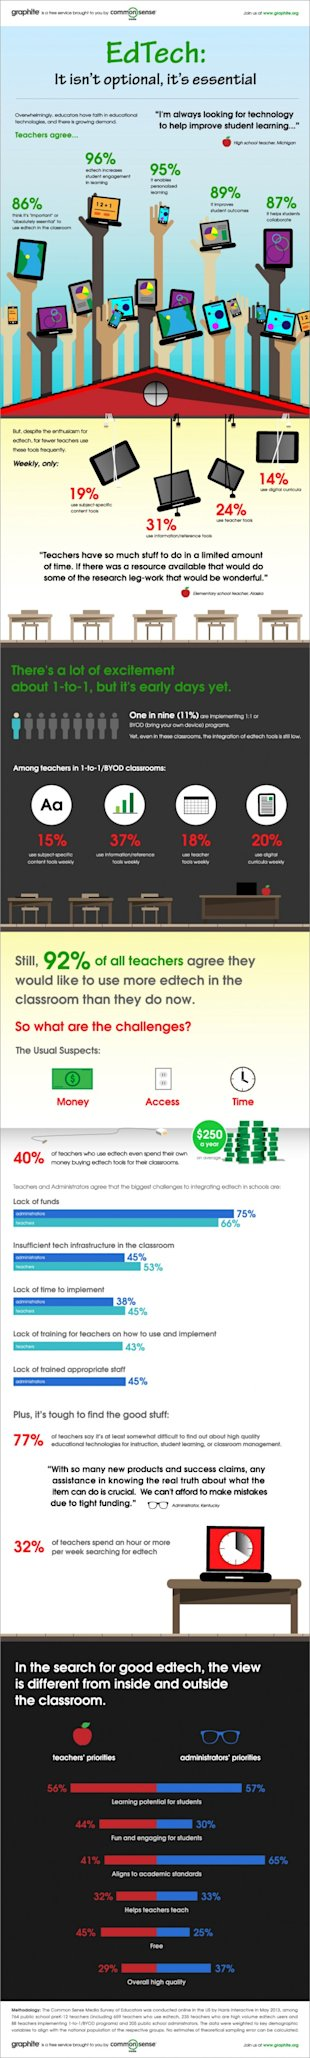 Teachers and Students Want Mobile Devices in the Classroom [Infographic] image edtech e1375301678435 1